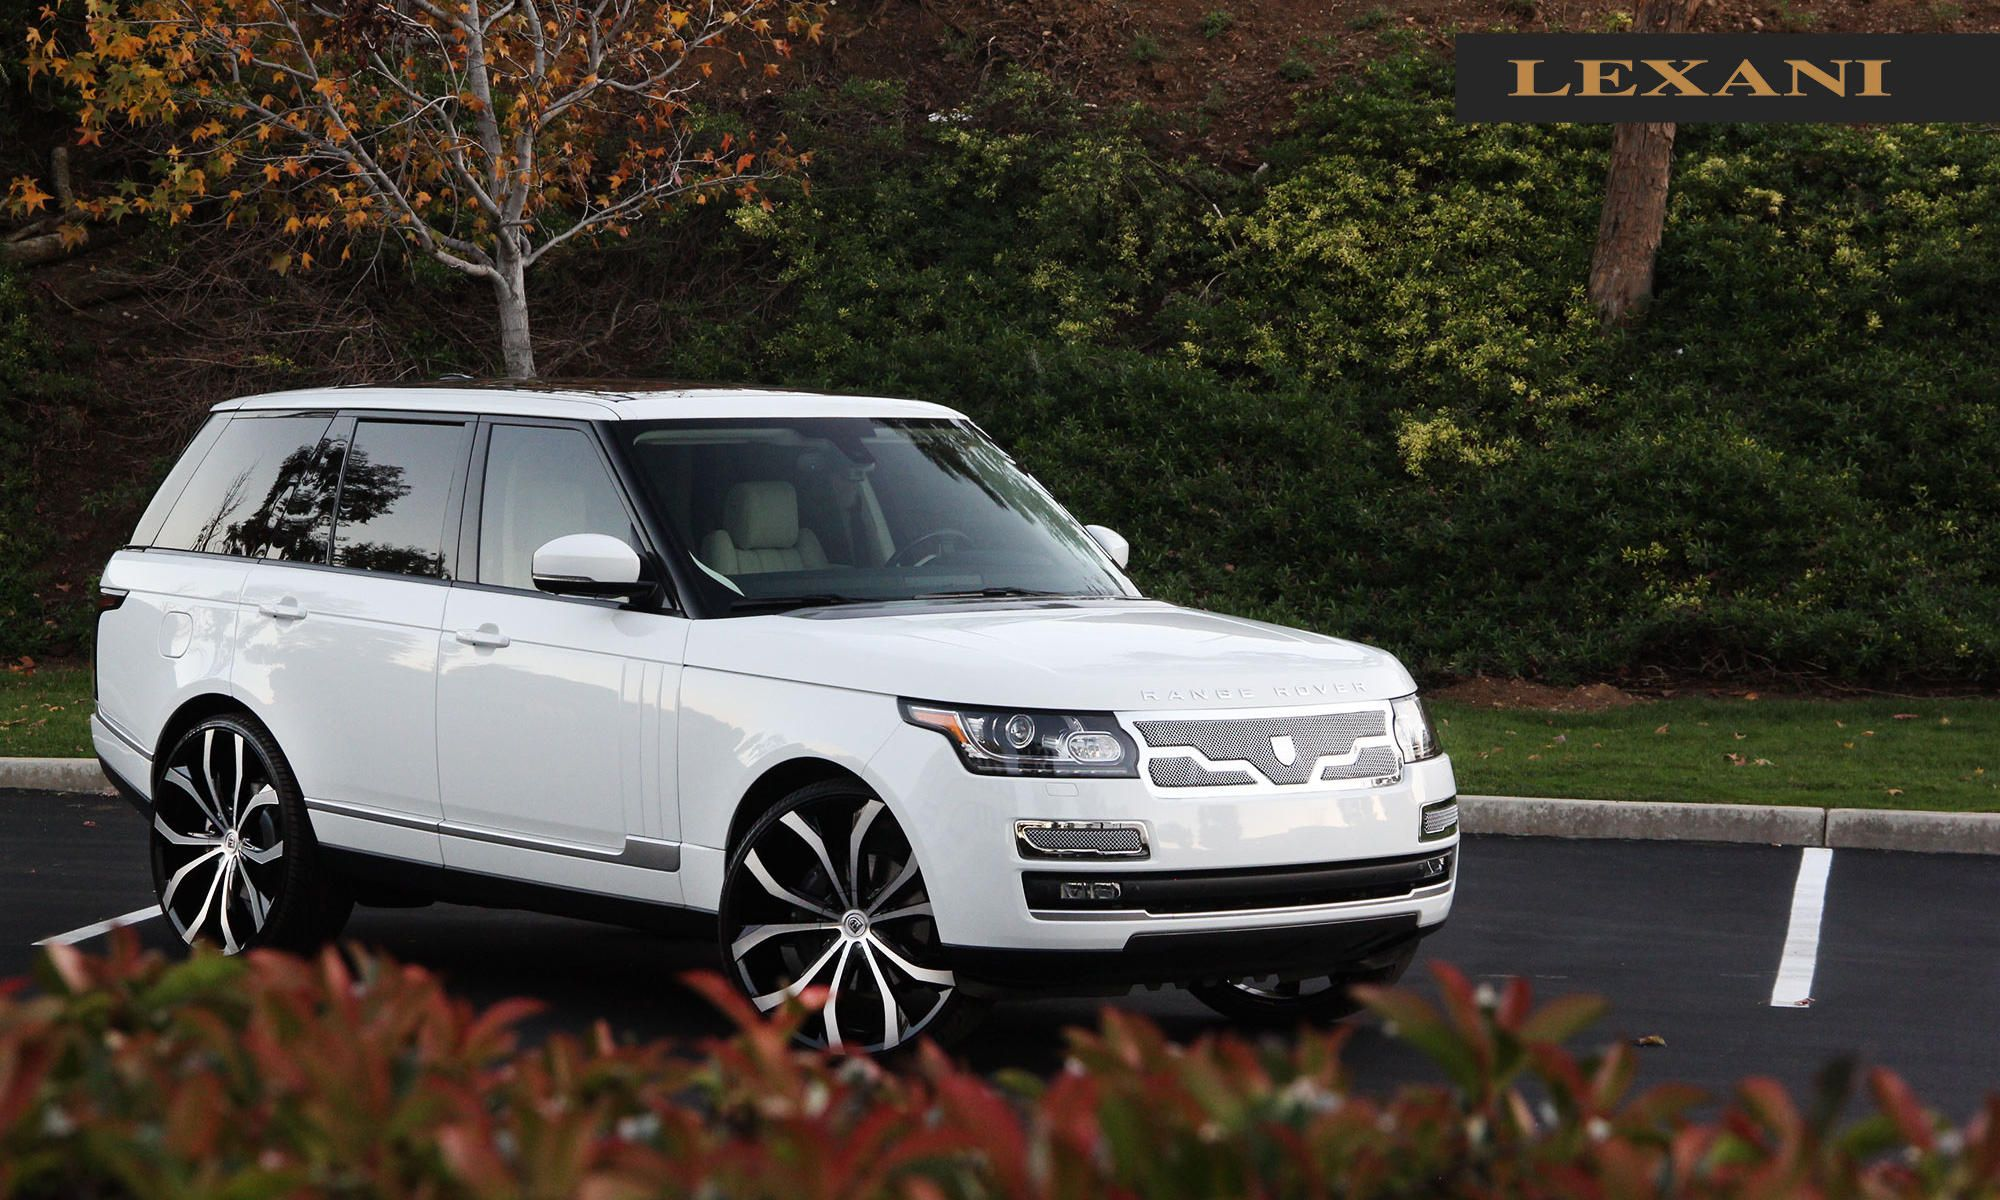 Lexani Wheels the leader in custom luxury wheels 2013 white